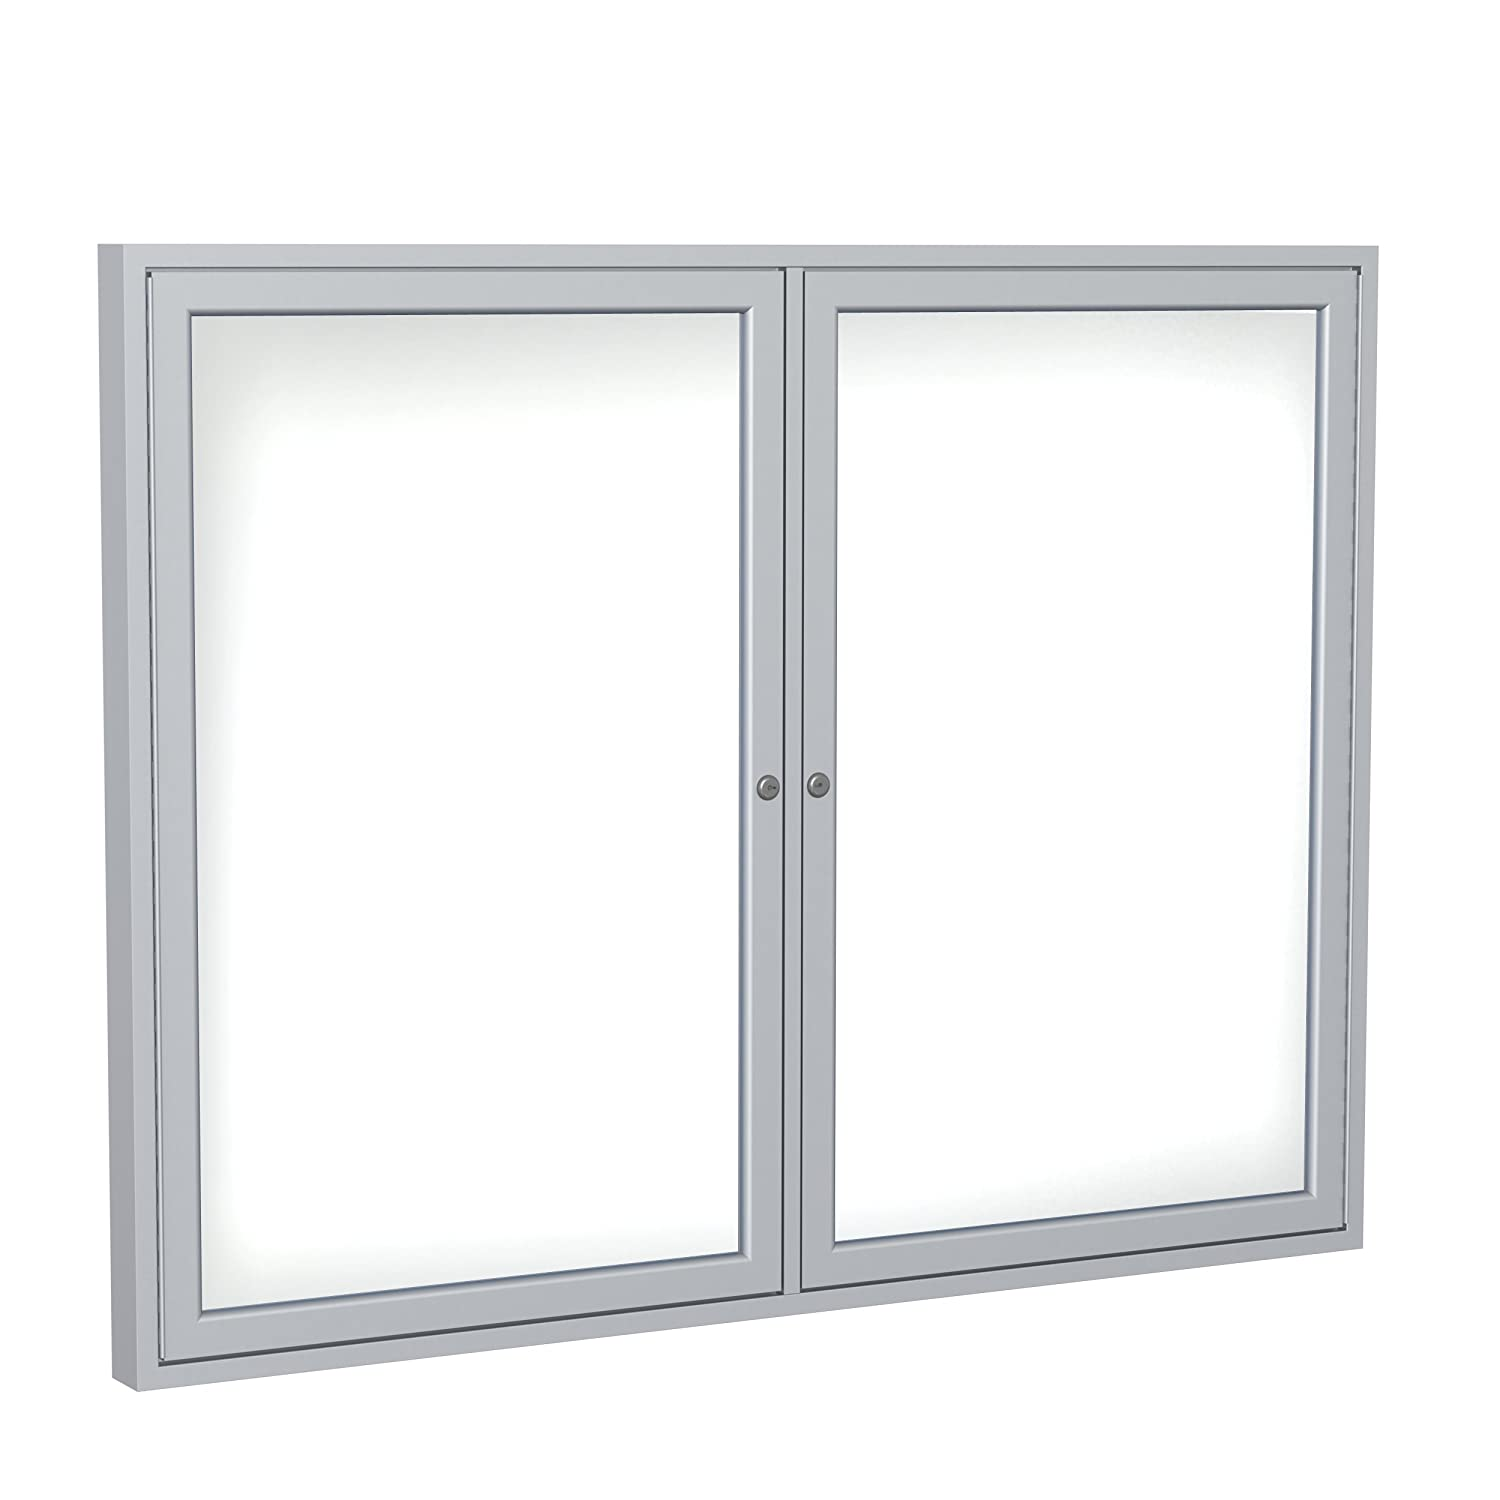 2 Door Enclosed Magnetic Whiteboard Frame Finish: Satin, Size: 4' H x 5' W